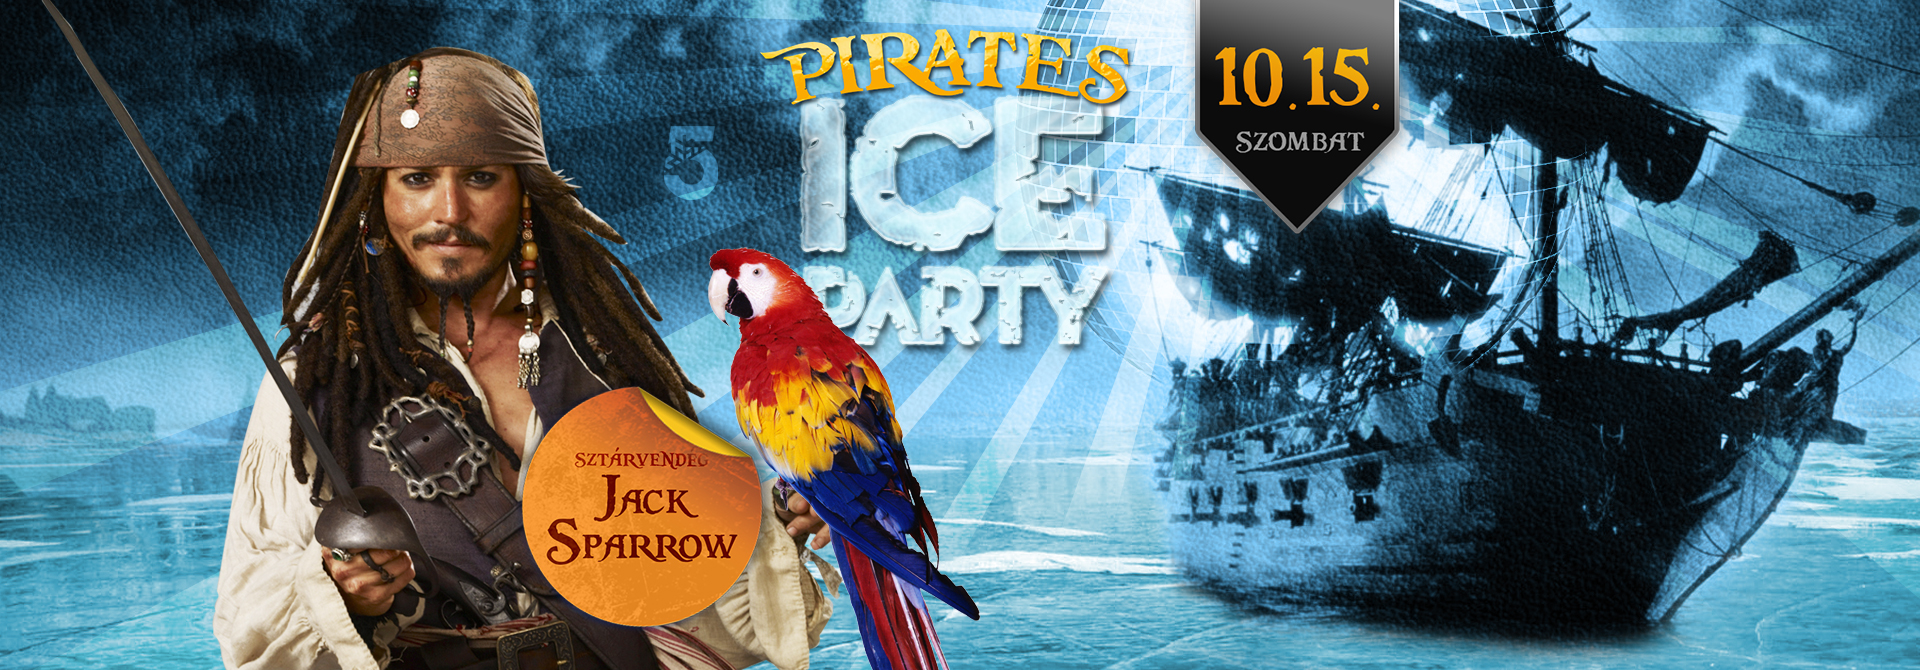 2016-10-15-iceparty-web